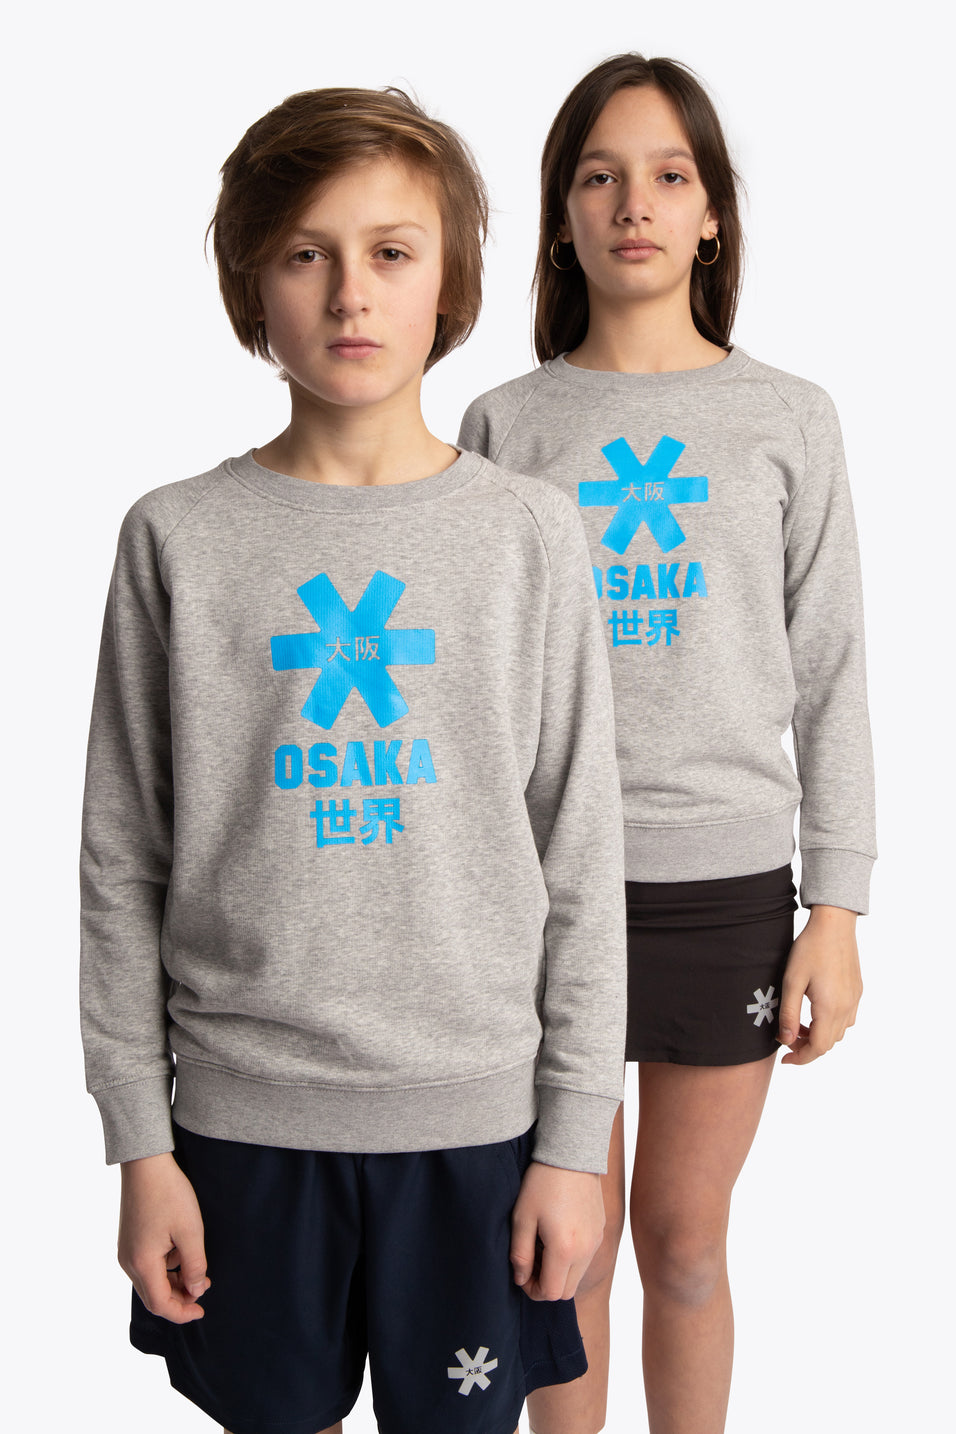 osaka  kids sweater unisex